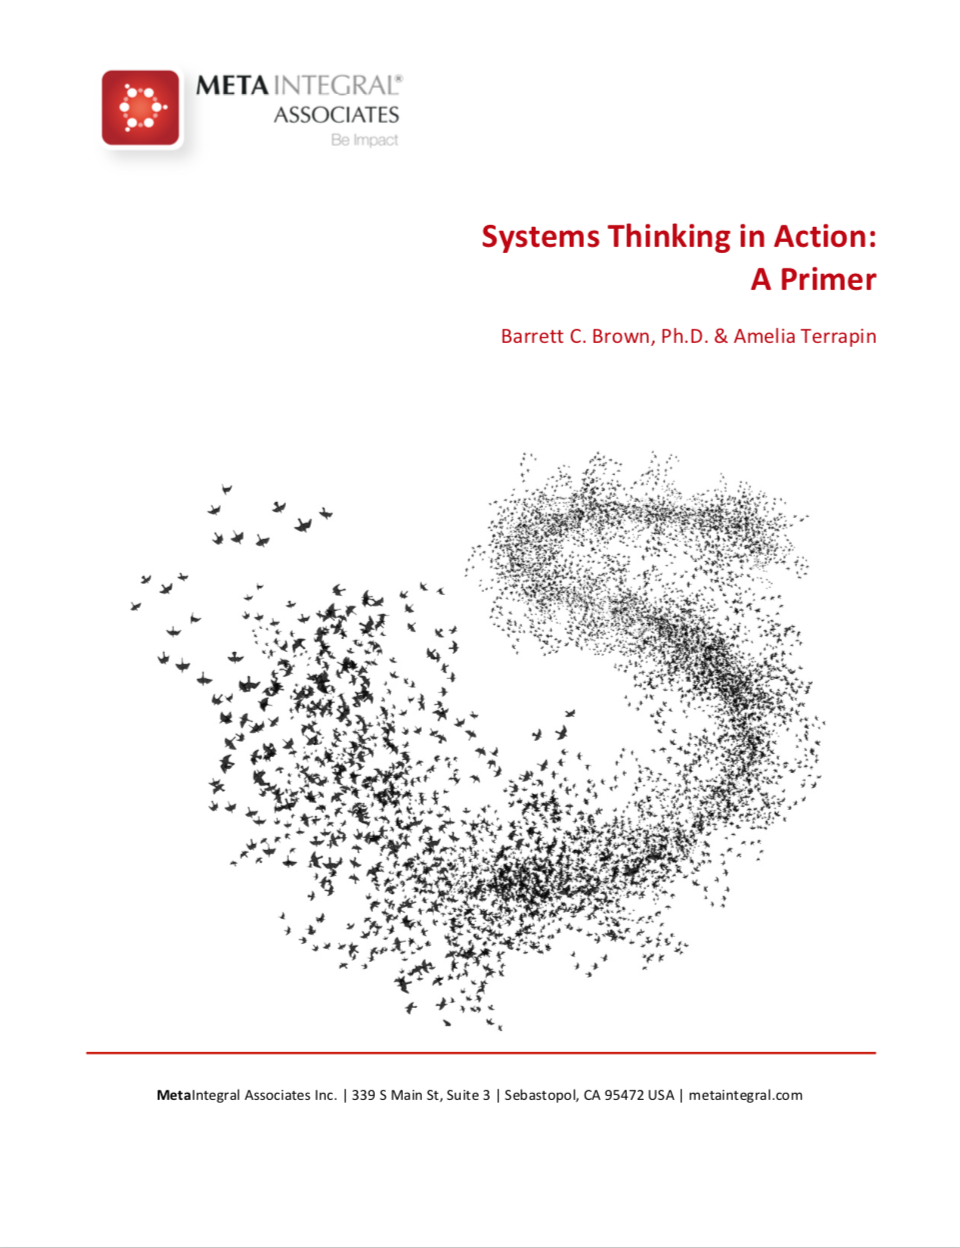 systems thinking in action: A primer - You are already a systems thinker to some degree. This article helps you further discipline your mind to see the wholes, patterns of change, and relationships, while letting go of the fragmentation, silos and those old-school, linear ways.